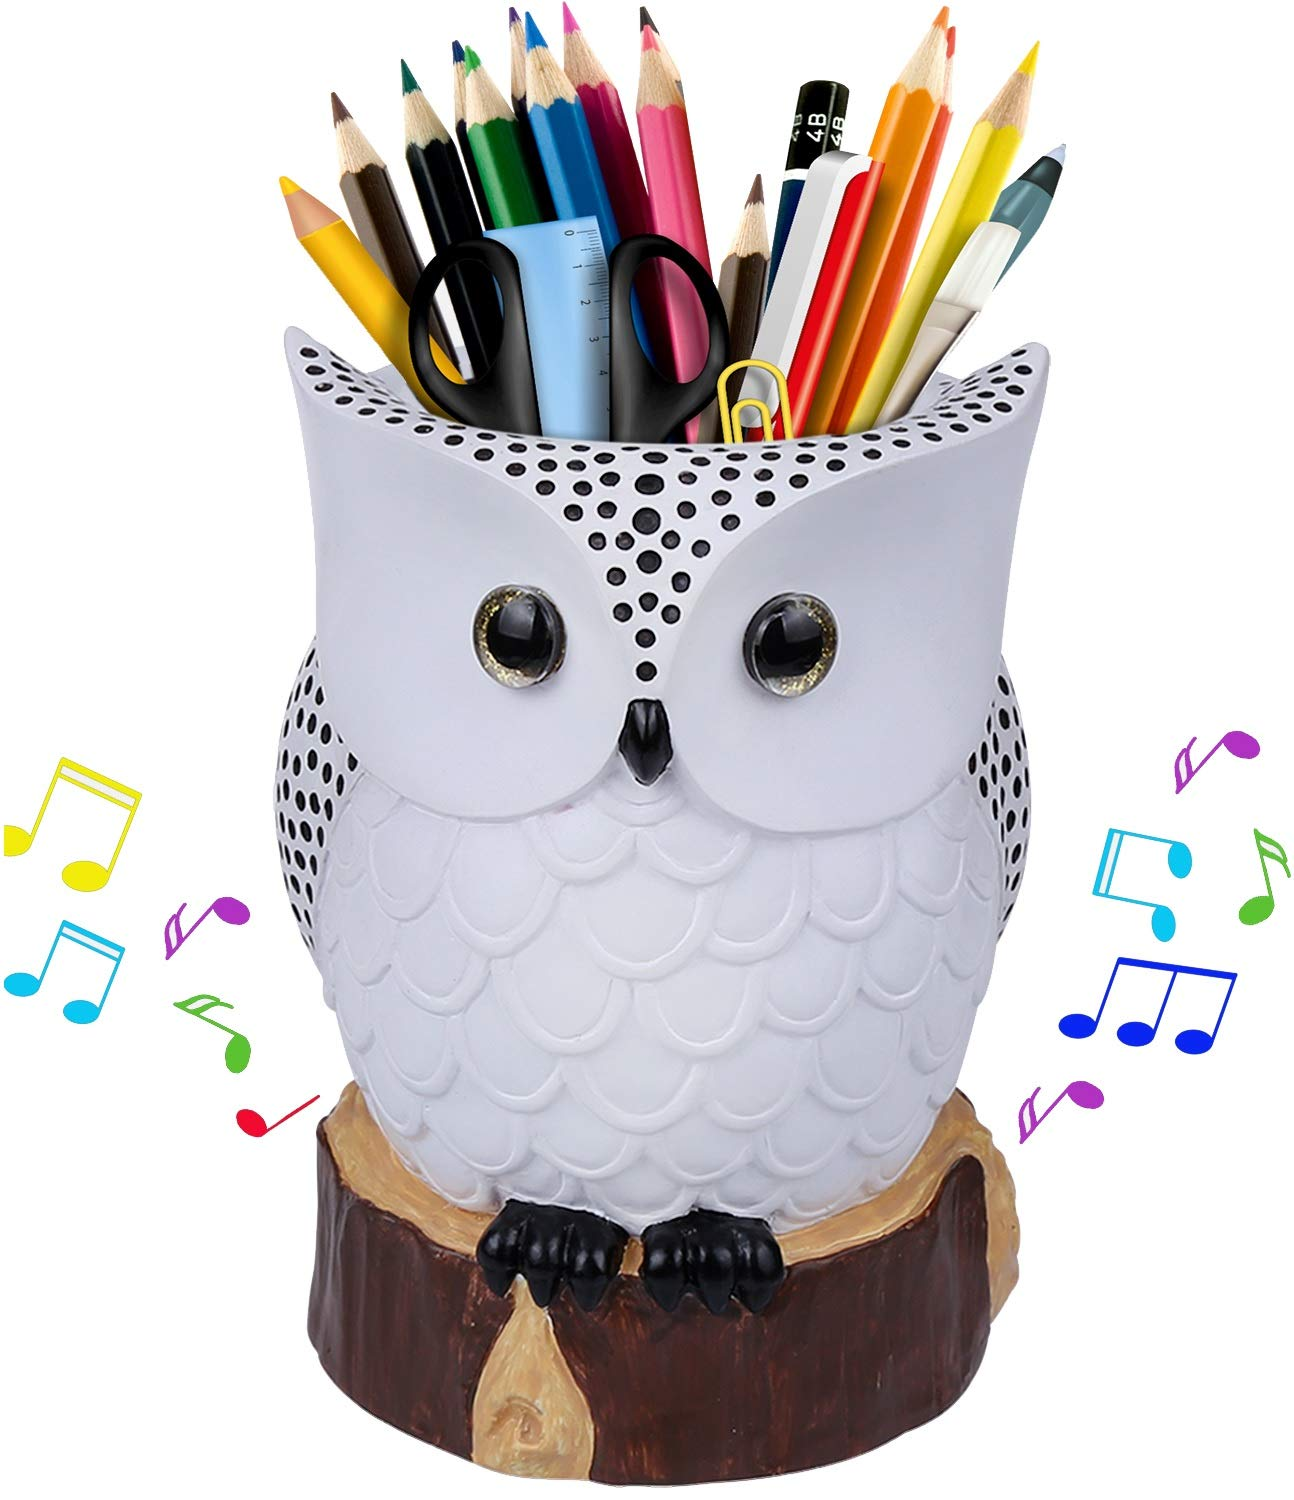 J JHOUSELIFESTYLE Owl Music Box with Brush Holder Function and Free White Pearl, White Owl Rotating as Music Plays, Great Owl Lover Gifts for Women Girls as Pencil Pen Holder for Desk - White by J JHOUSELIFESTYLE